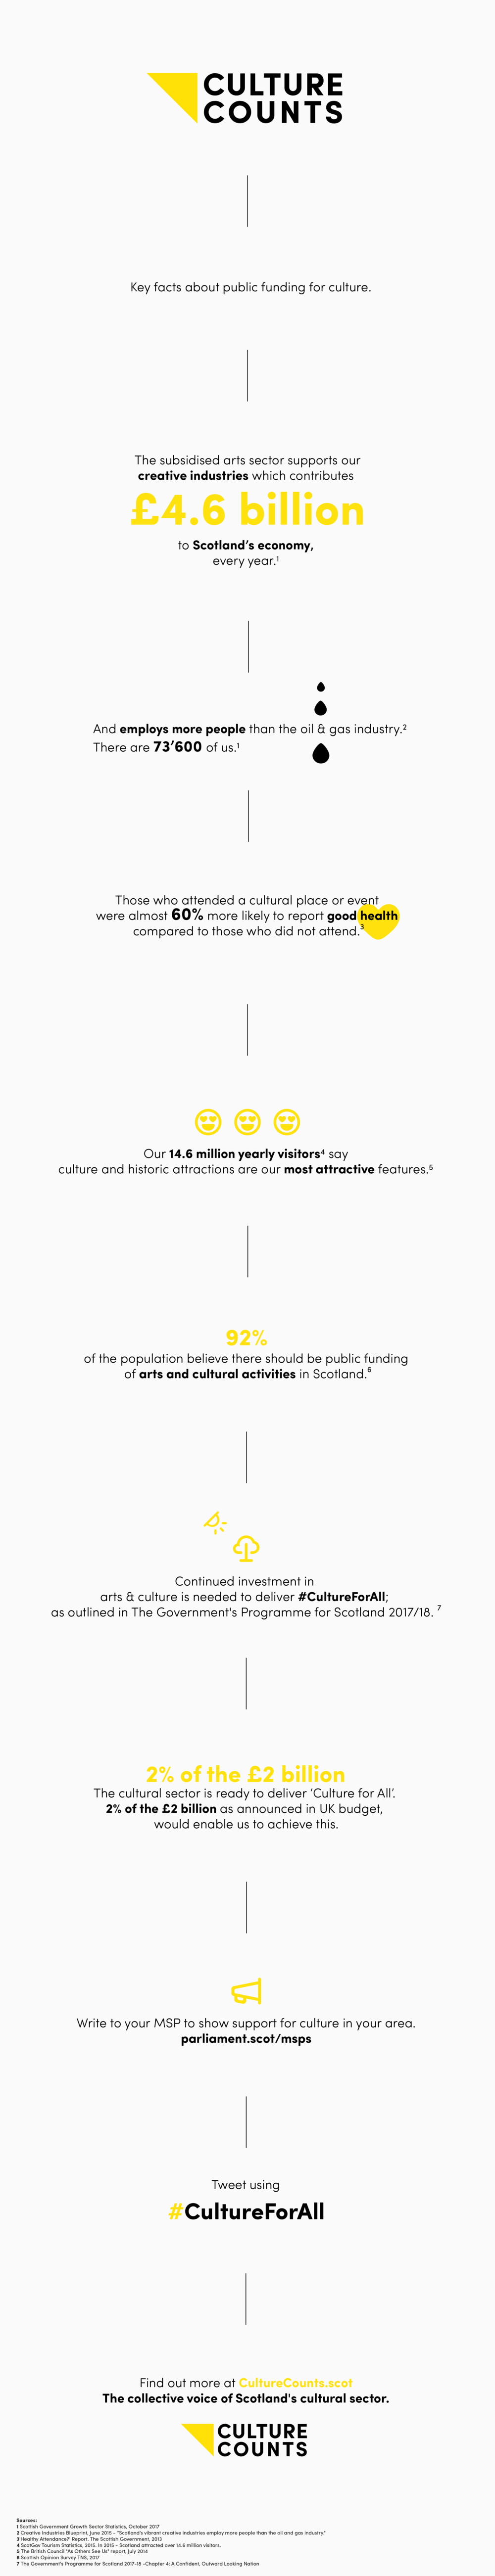 CFA Infographic@3x.png